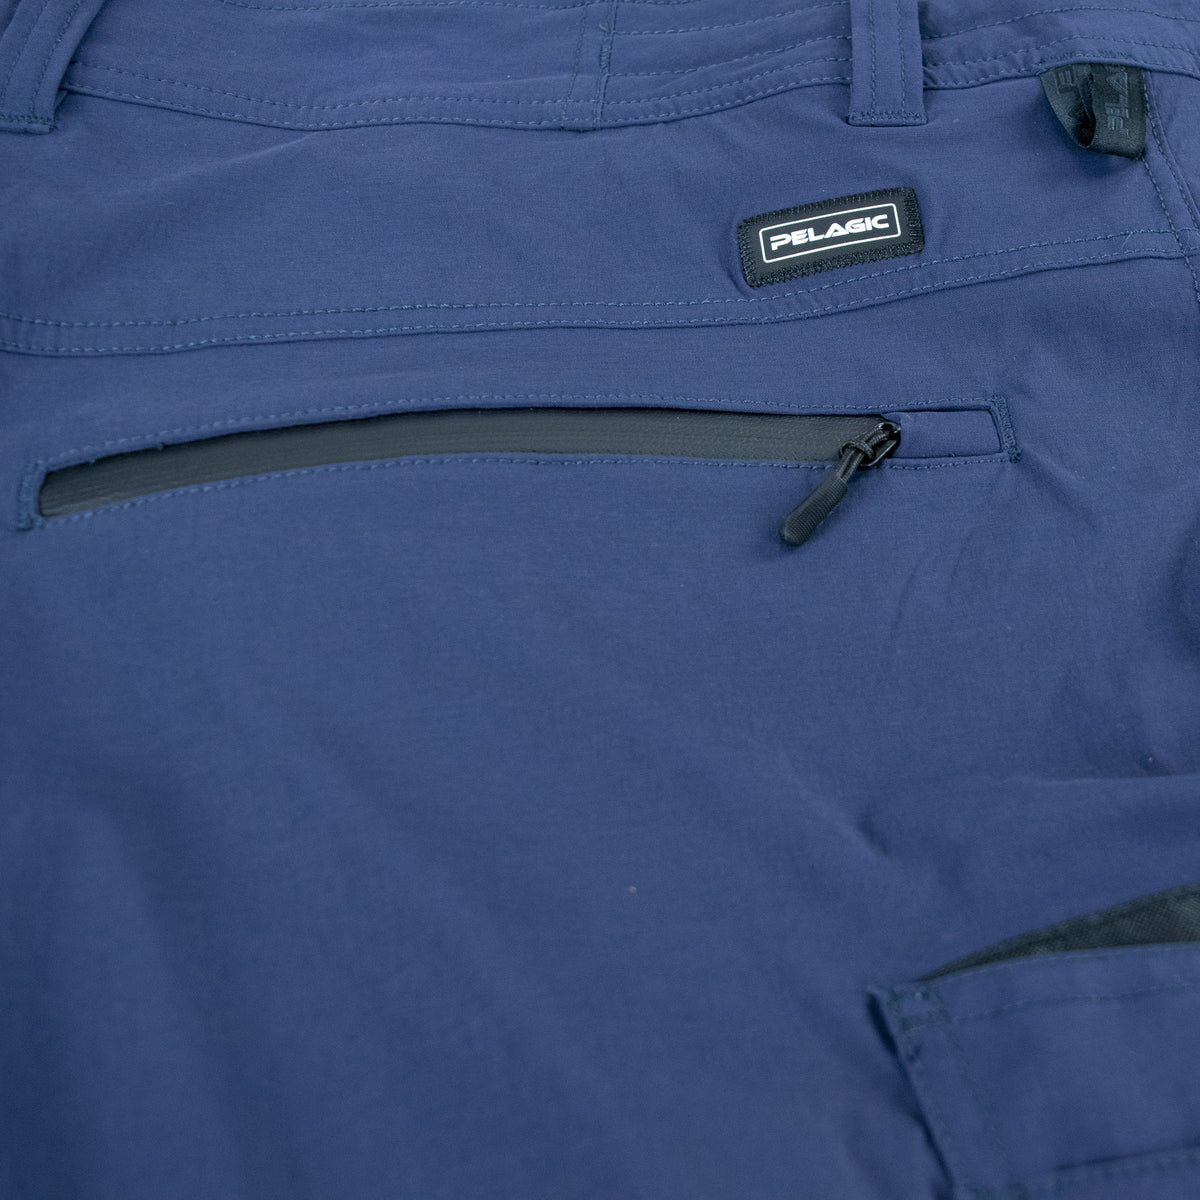 Traverse Lightweight Fishing Pants Big Image - 5